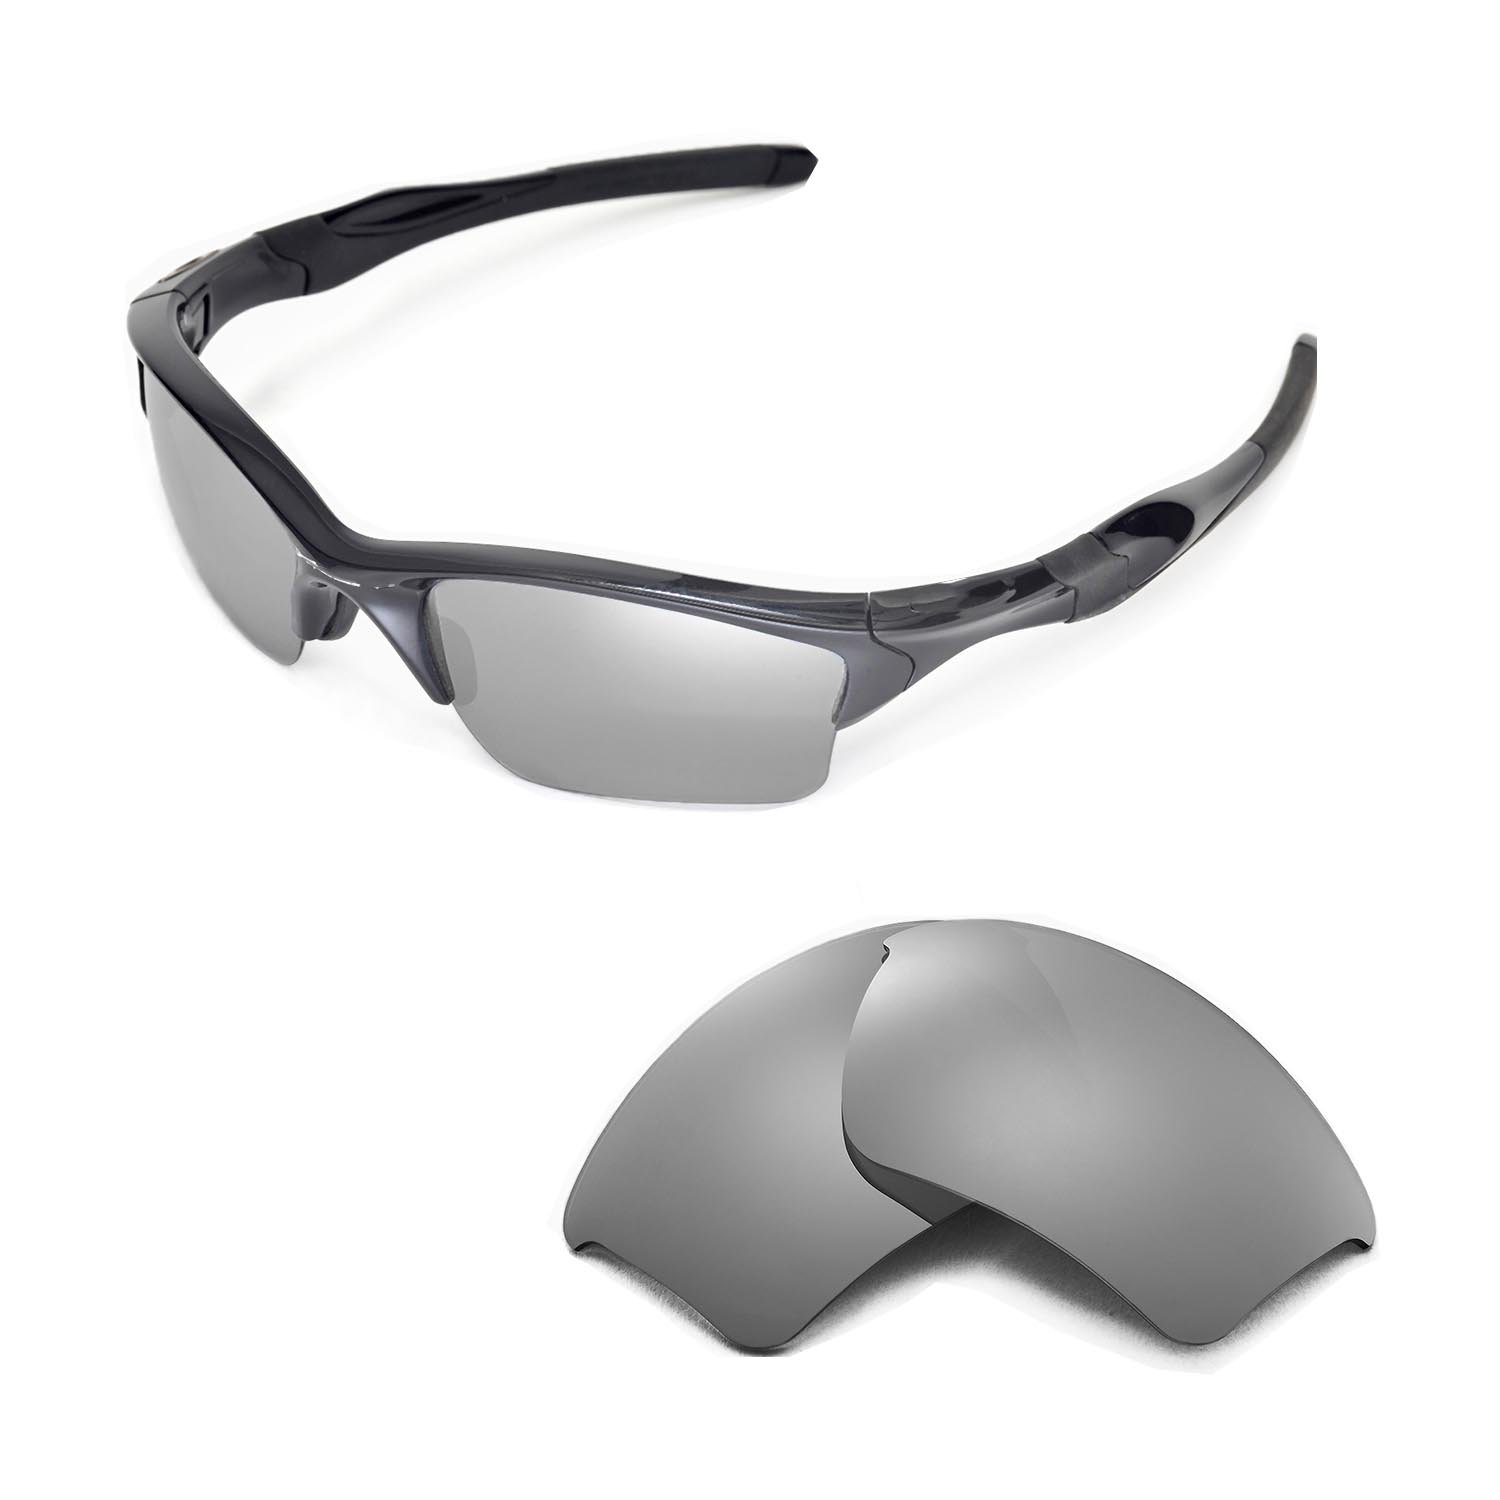 Walleva Replacement Lenses 4 Oakley Half Jacket 2.0 XL Sunglasses - Multiple Options (Titanium) by Walleva